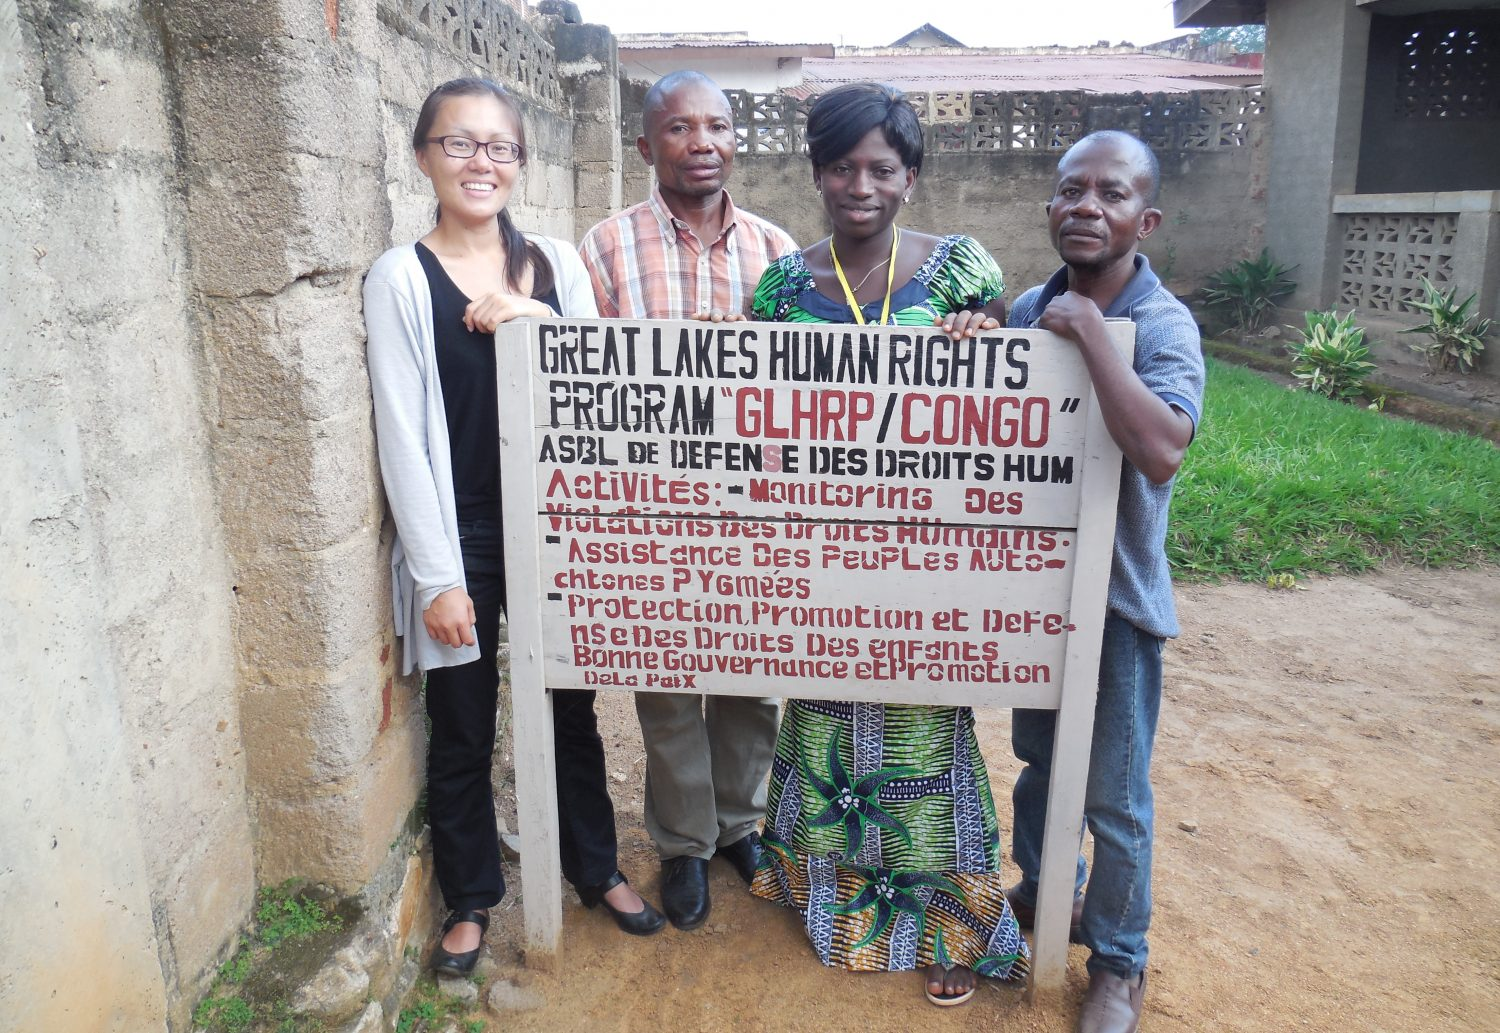 REDRESS with partners in Congo